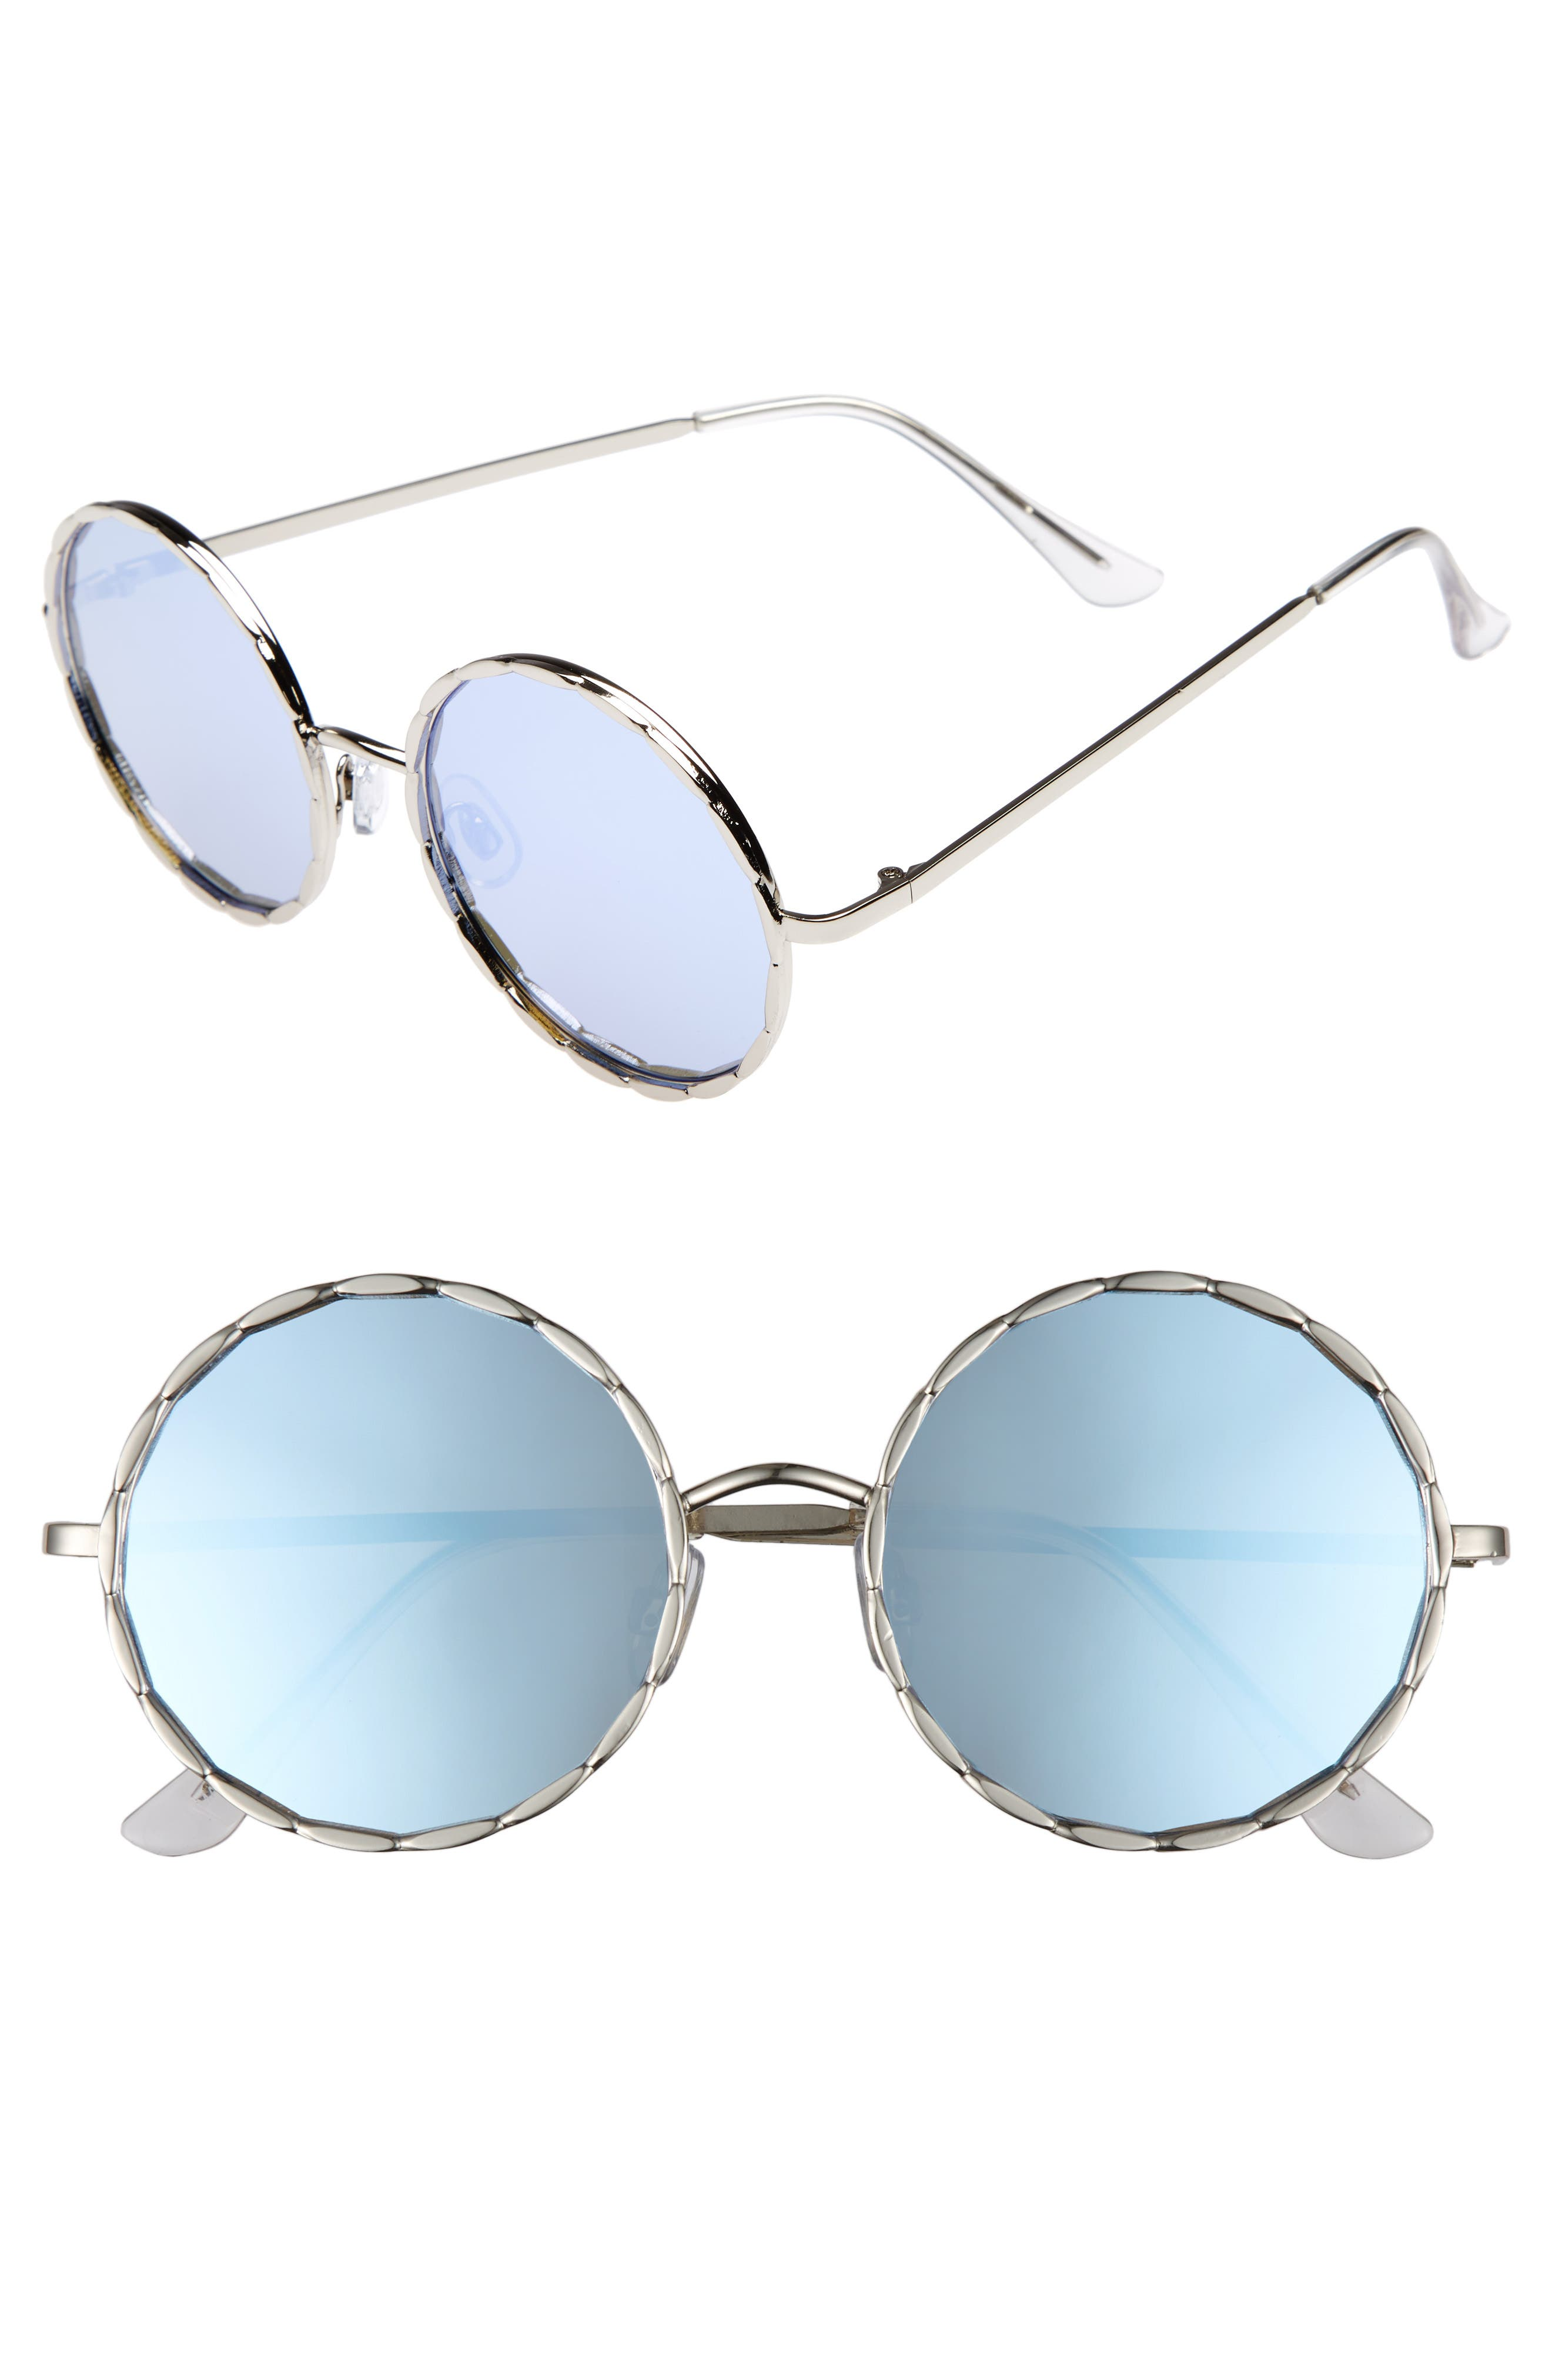 58mm Textured Round Sunglasses,                             Main thumbnail 1, color,                             040